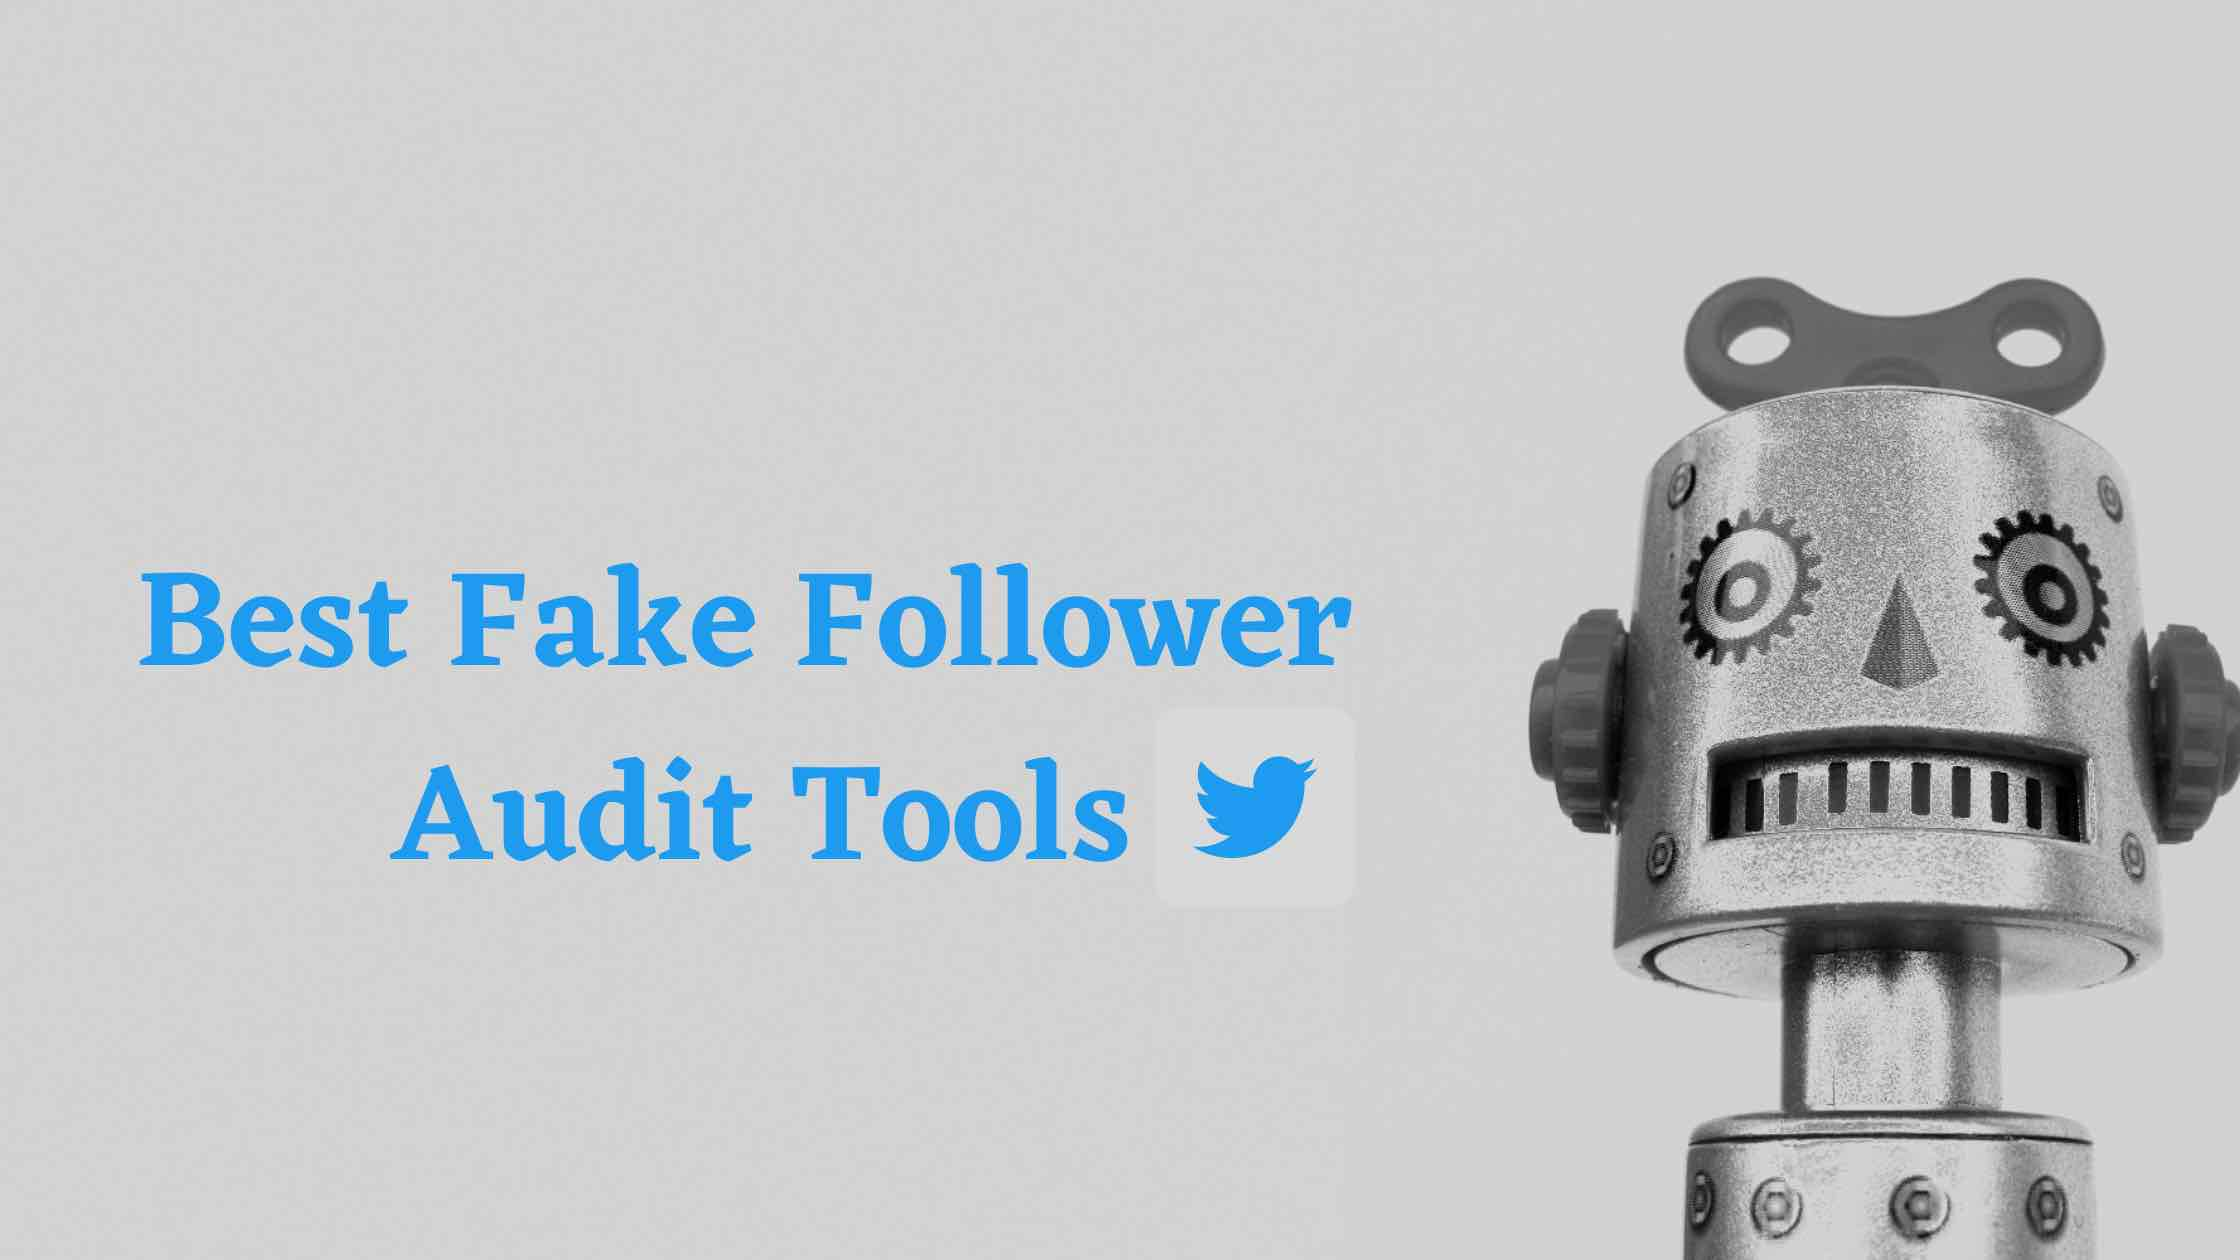 6 best fake follower audit tools blog banner